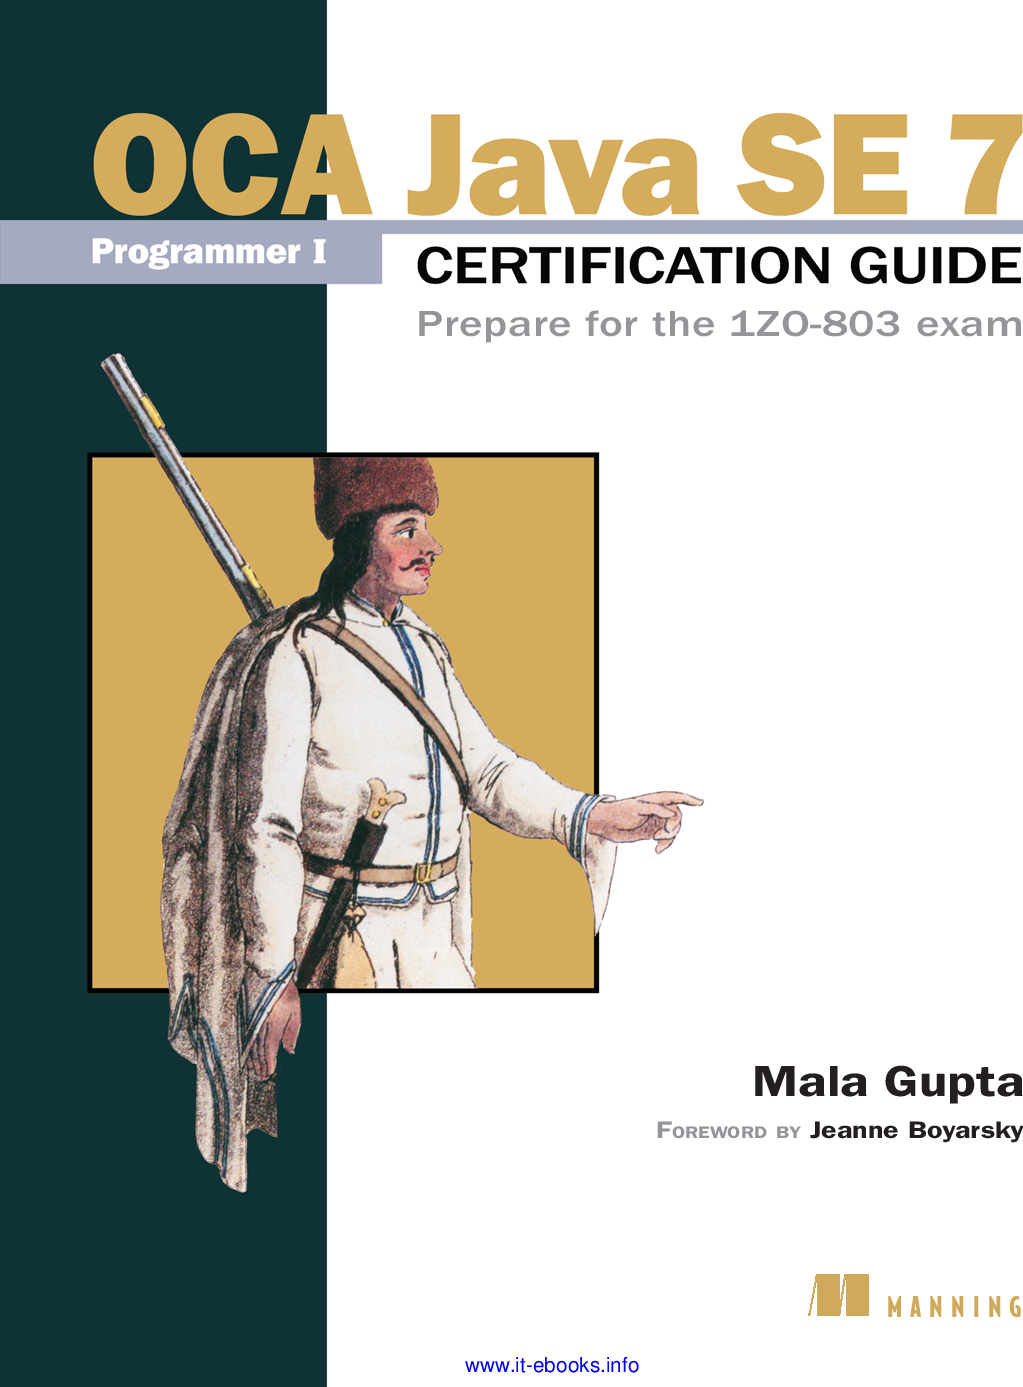 OCA Java SE 7 Programmer I Certification Guide [JAVA][OCA Guide]